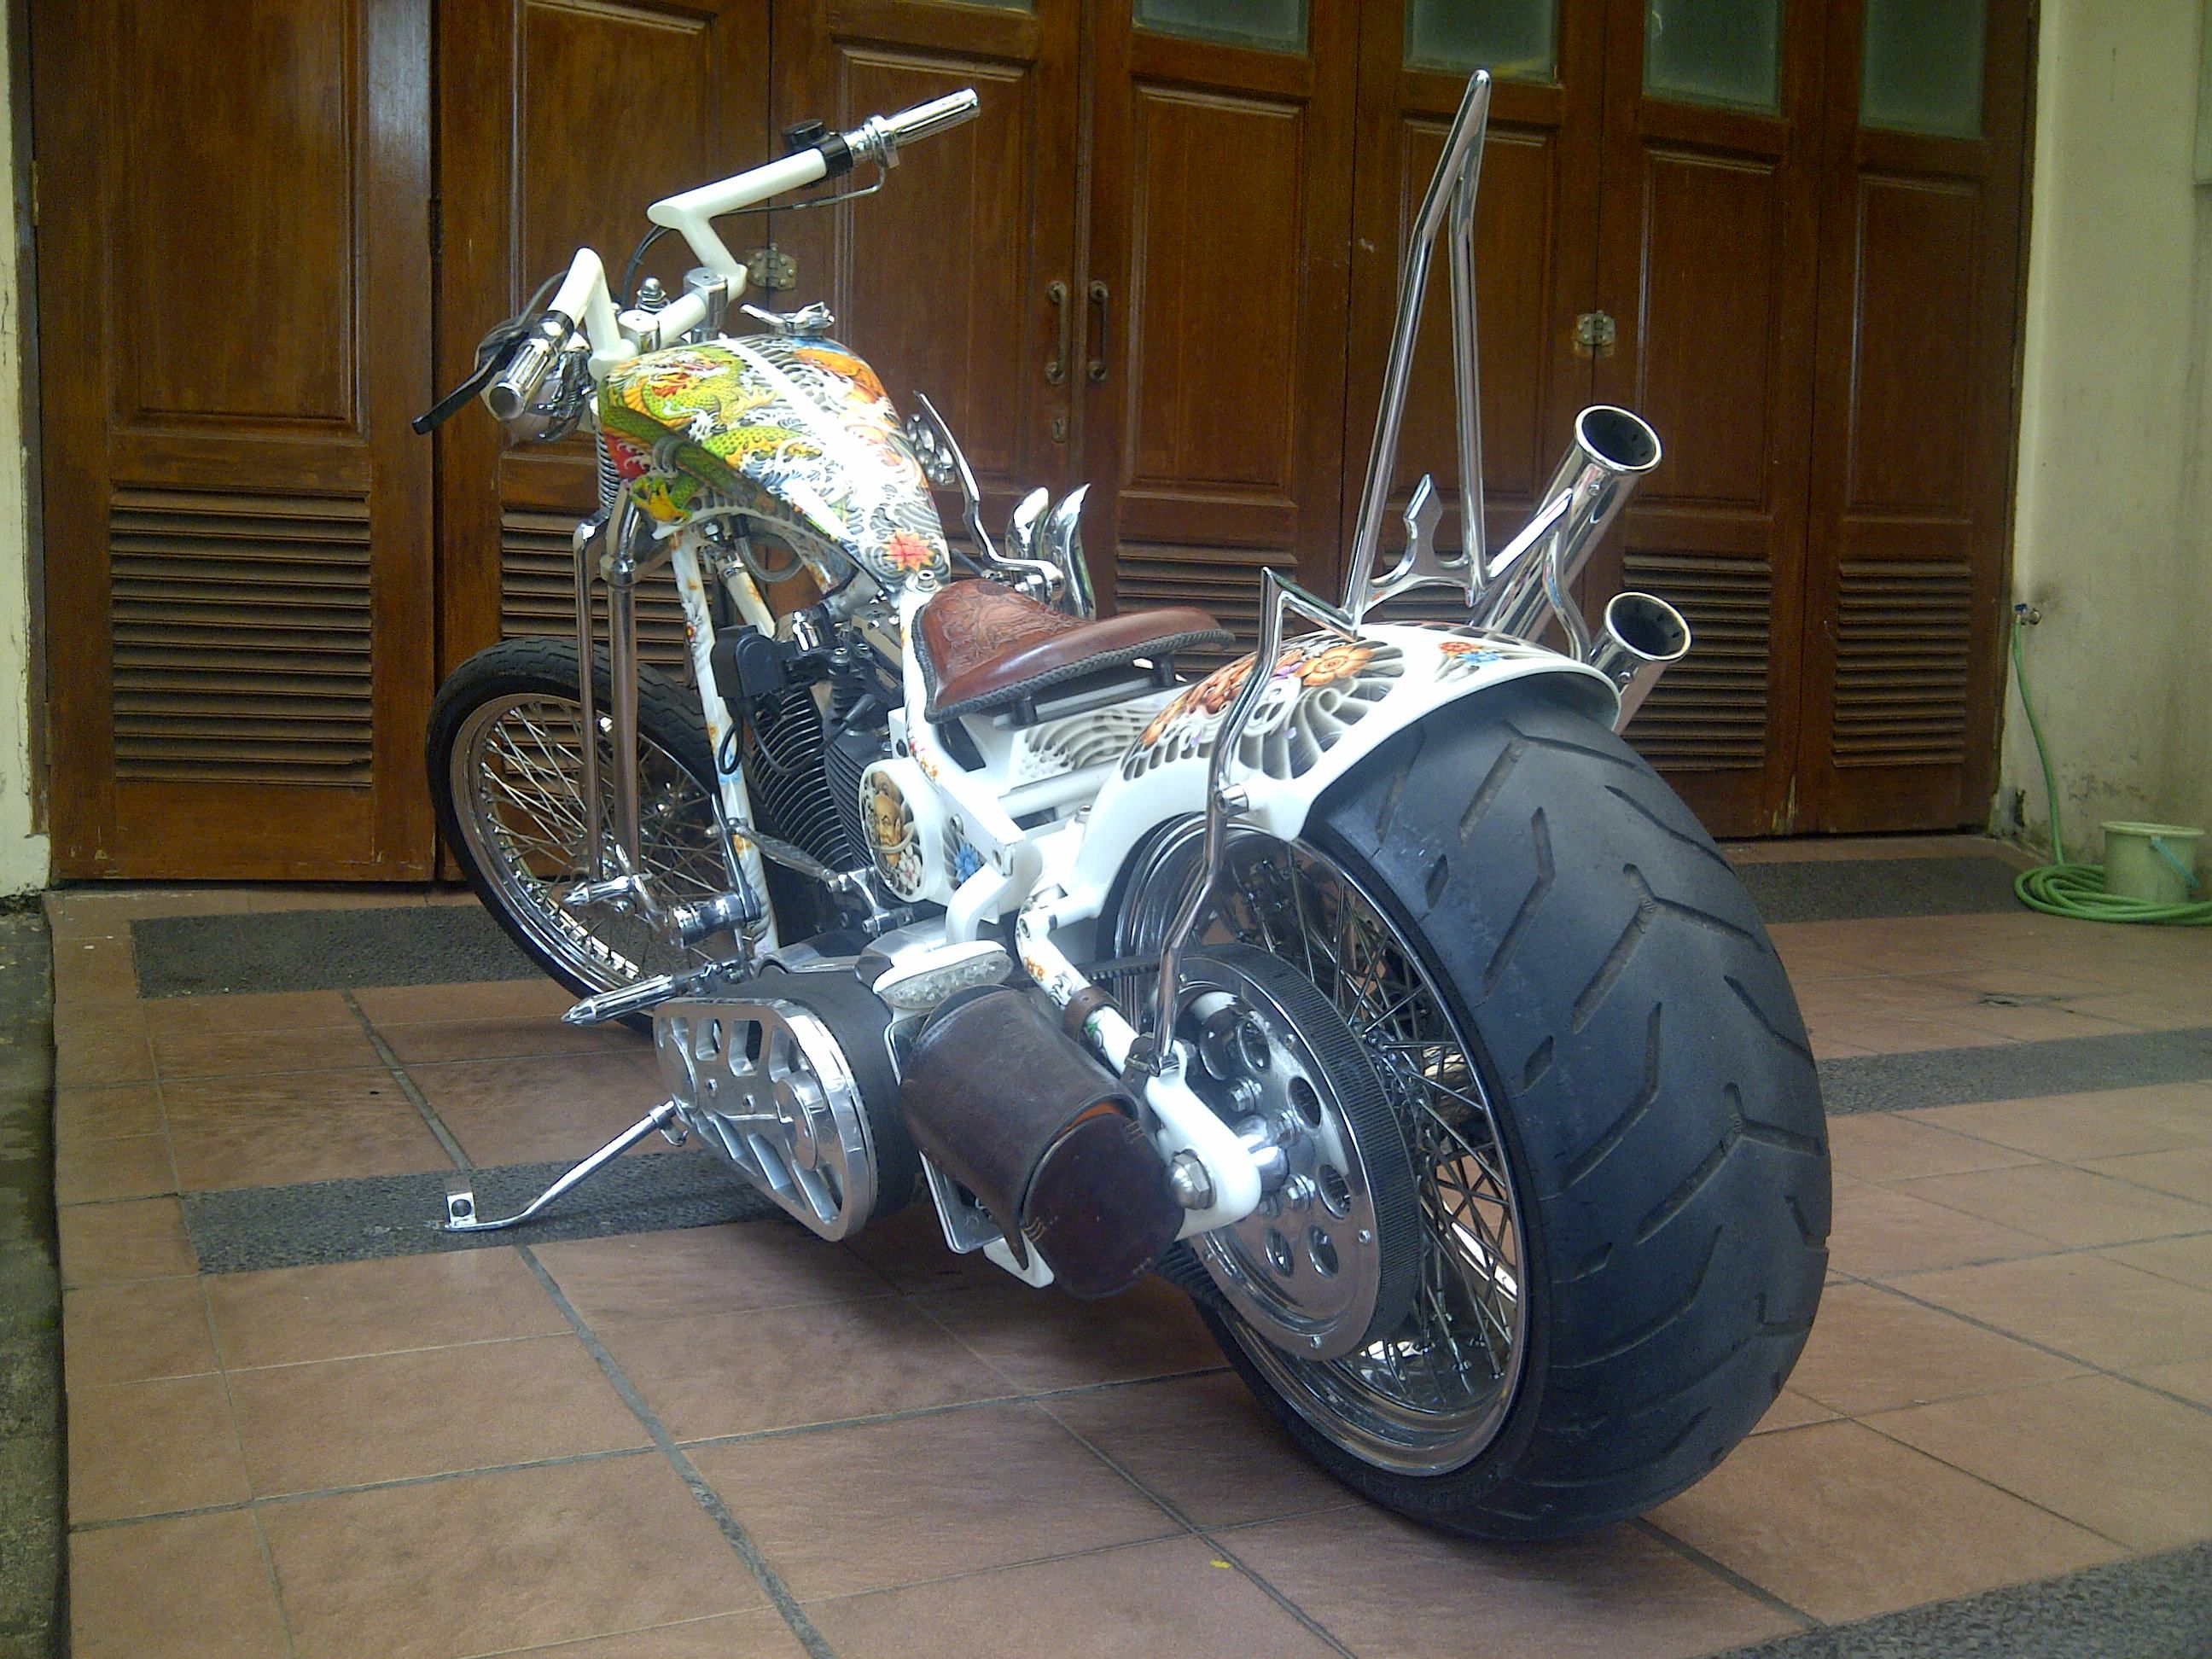 custom softail motorcycle frames. Basic On Softail 1996 Evo Engine, Paucho Springer + Demoncycle Frame Custom Motorcycle Frames L